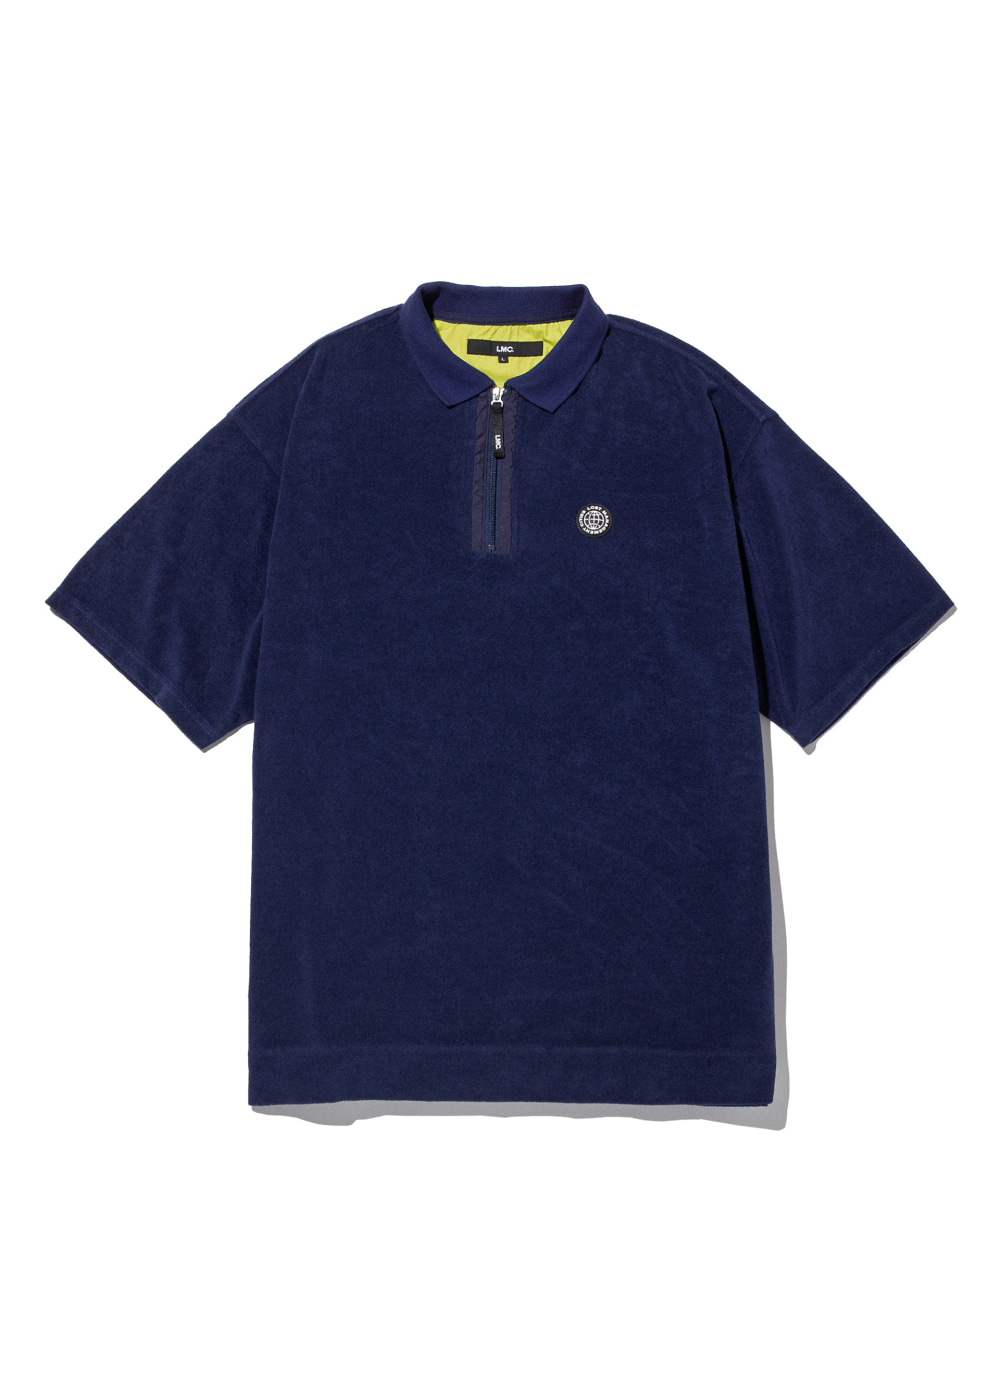 LMC TERRY ZIP POLO SHIRT navy